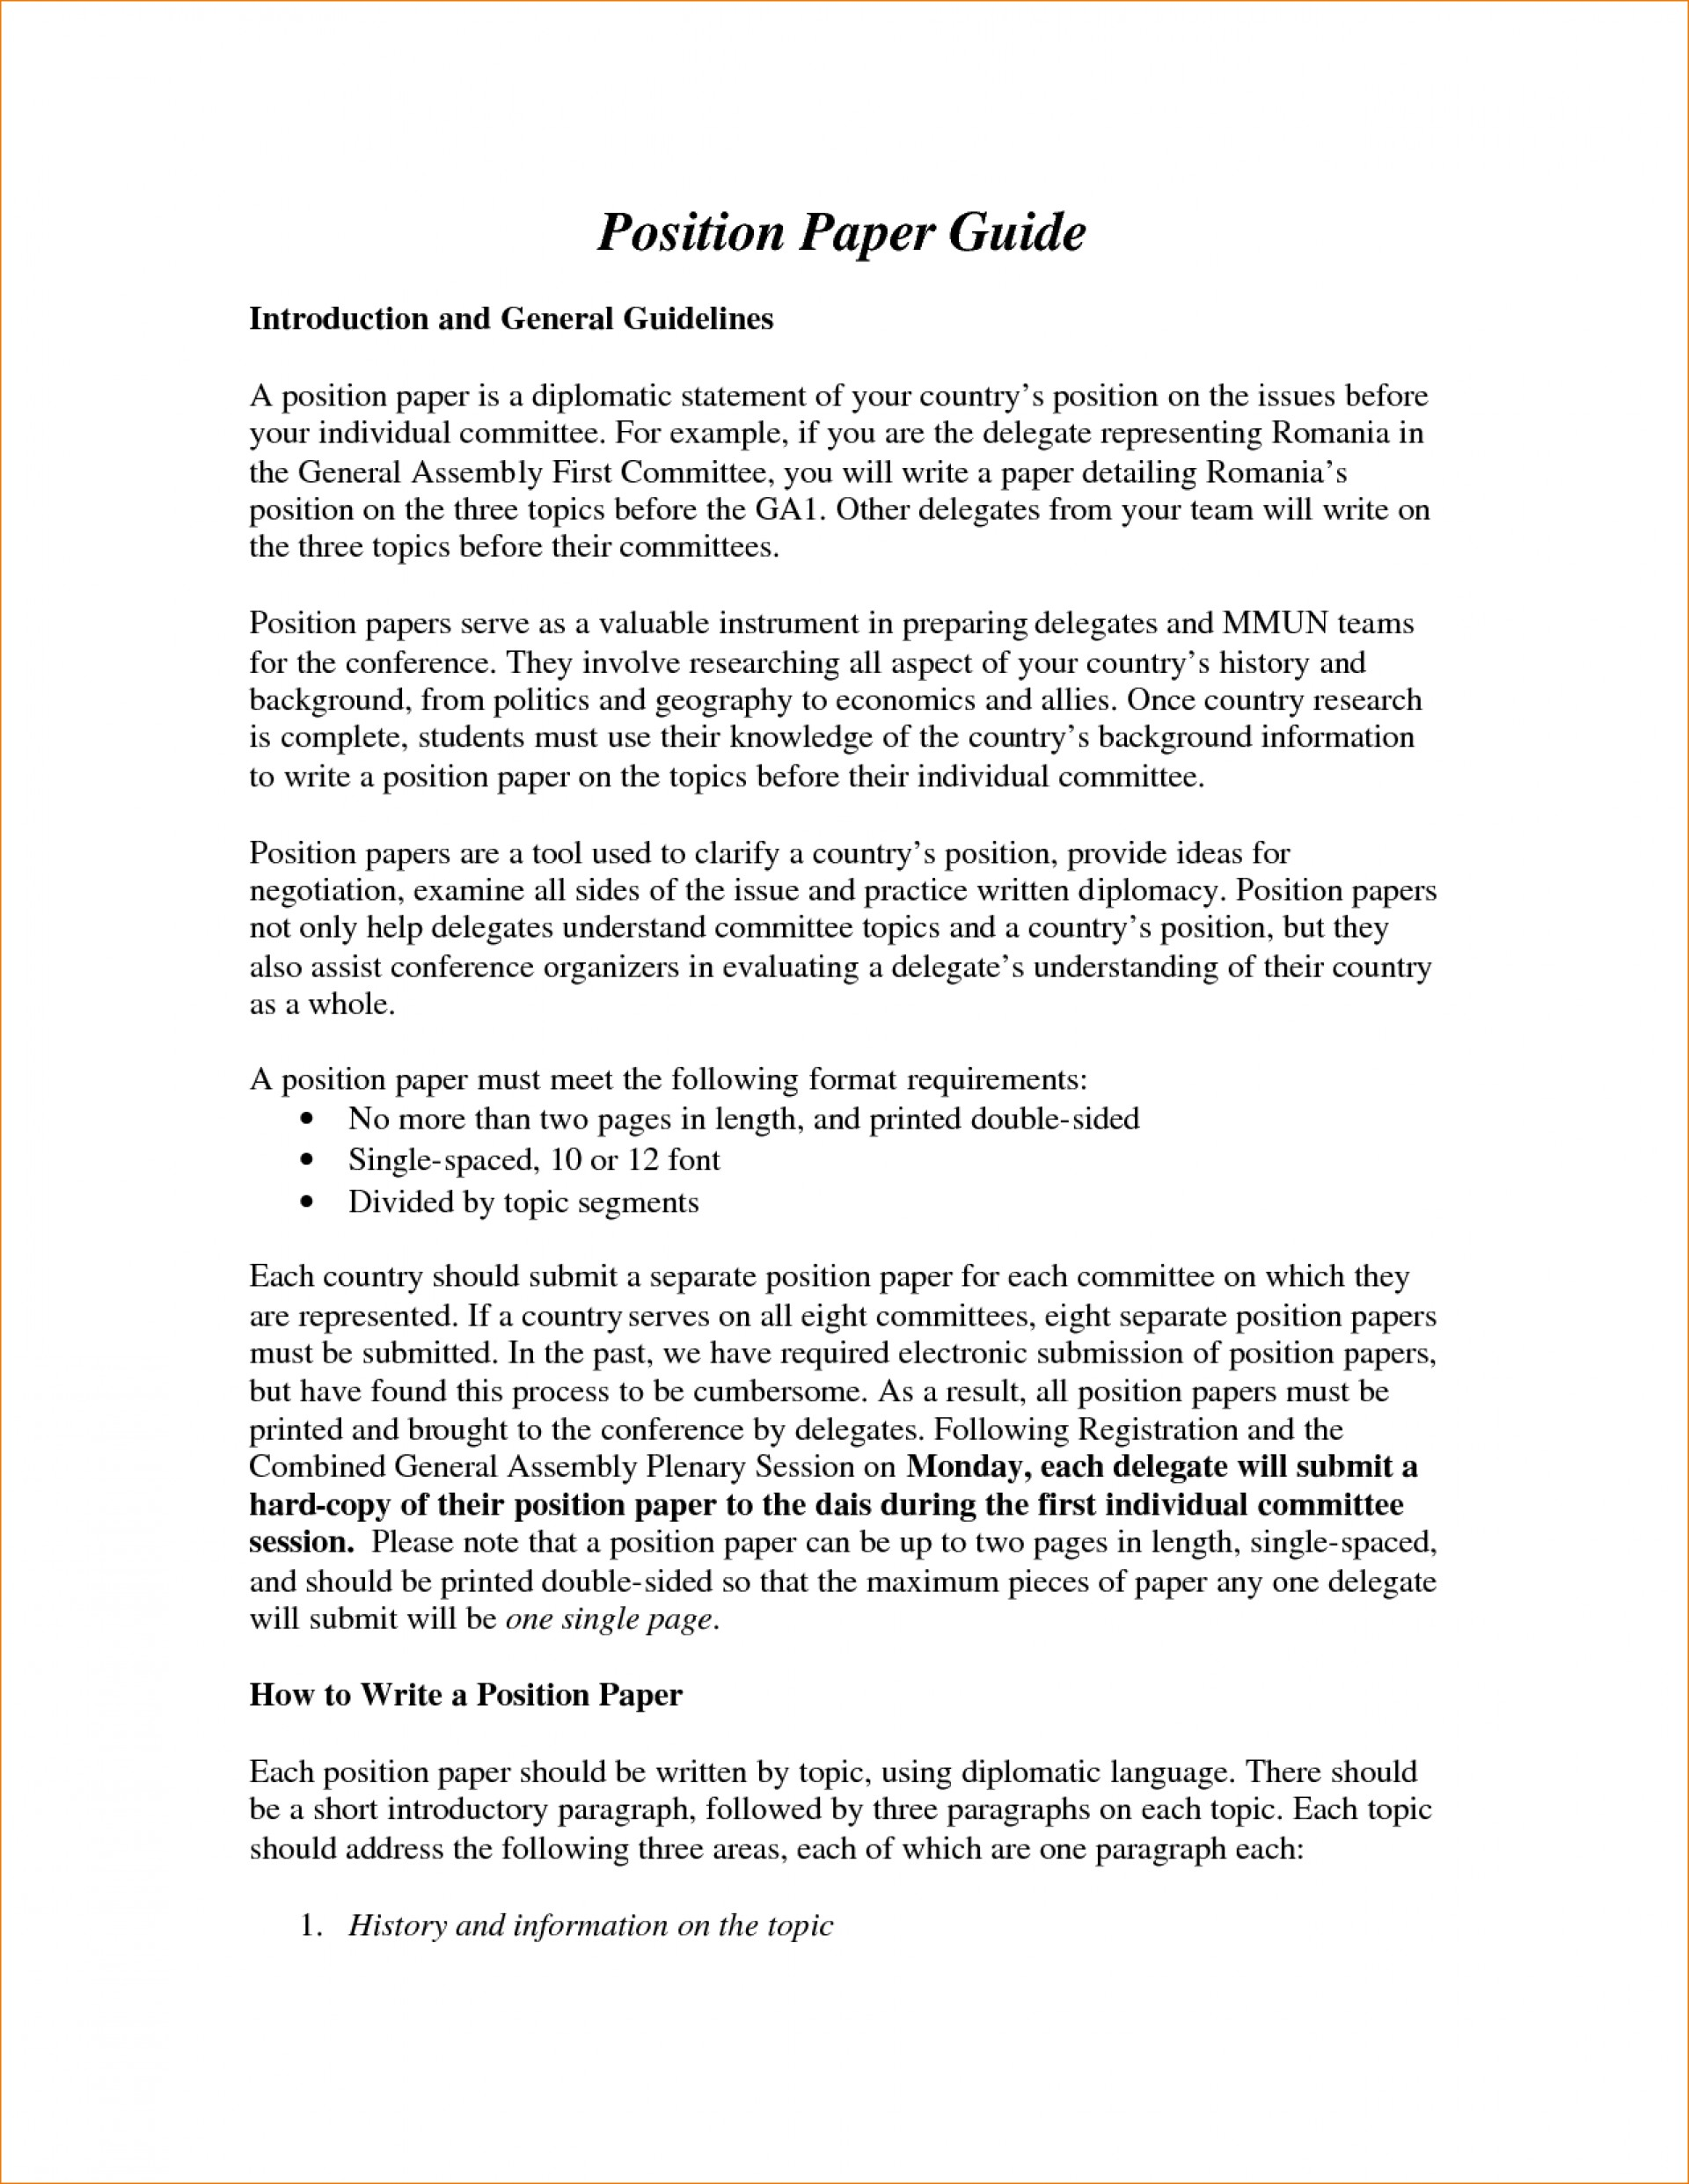 006 Research Paper Proposal Template Sensational Proposals Sample Examples 1920